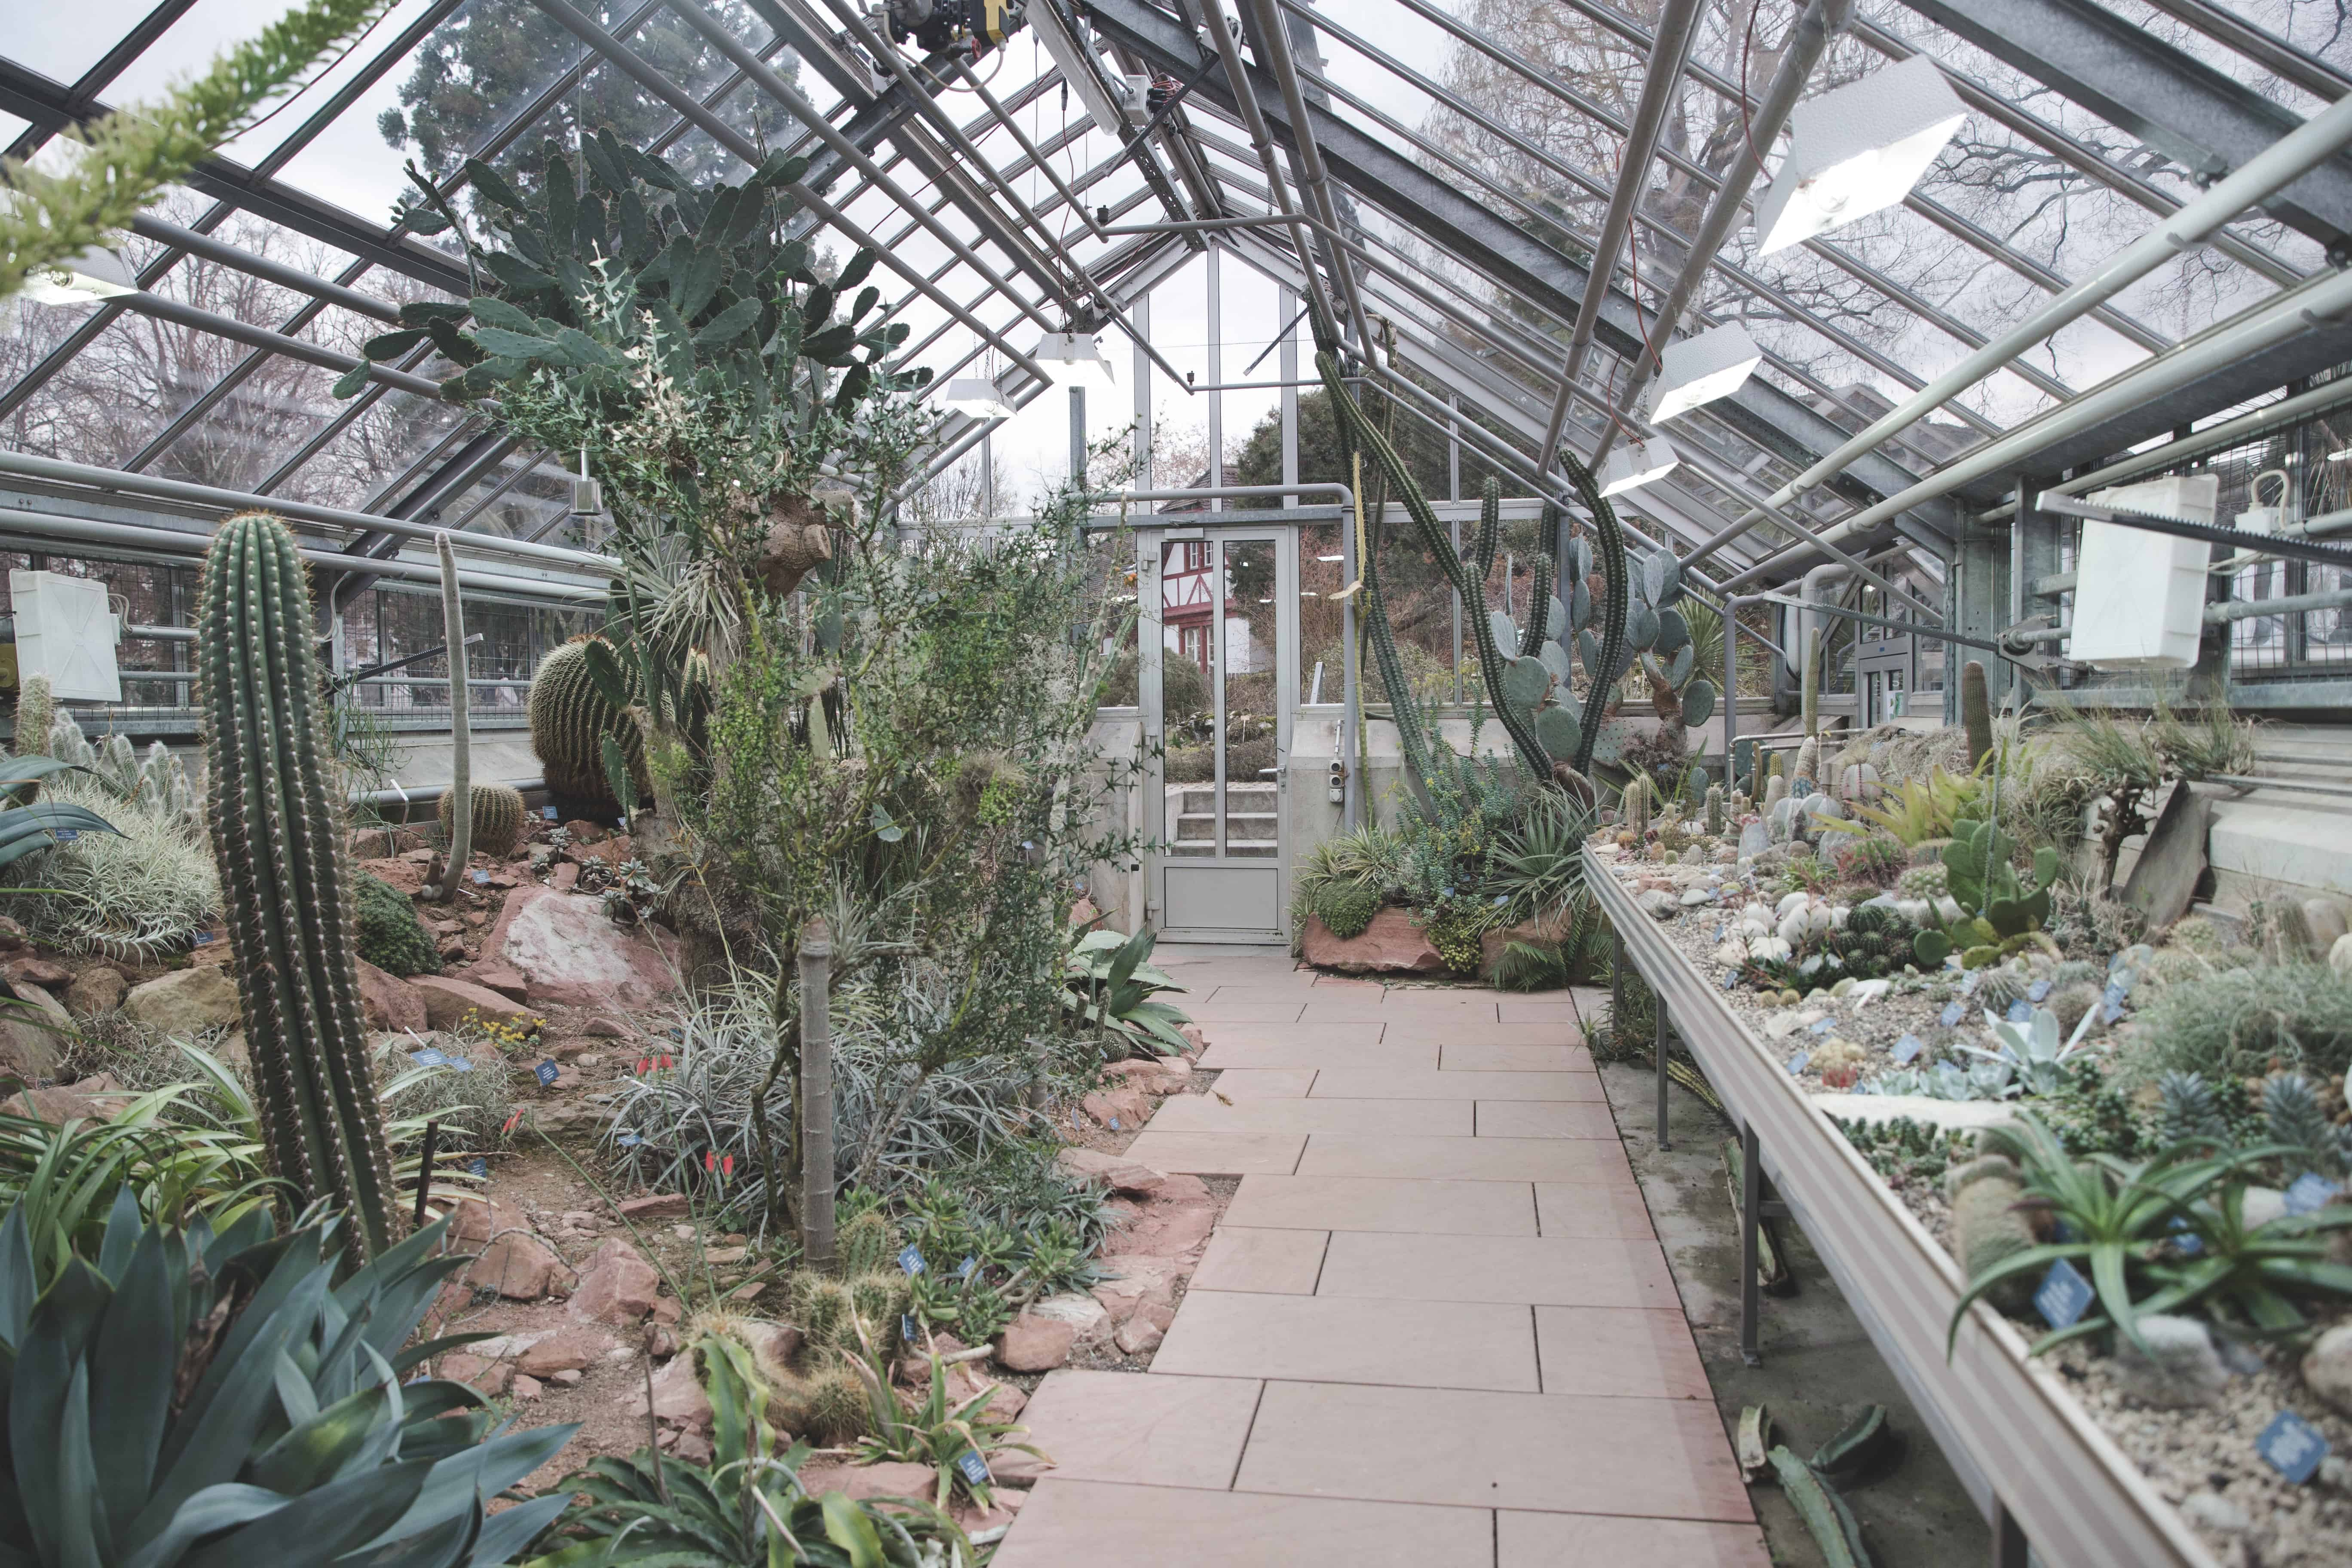 The University of Basel Botanical Gardens consist of greenhouses full of different plants and are a great rainy day activity